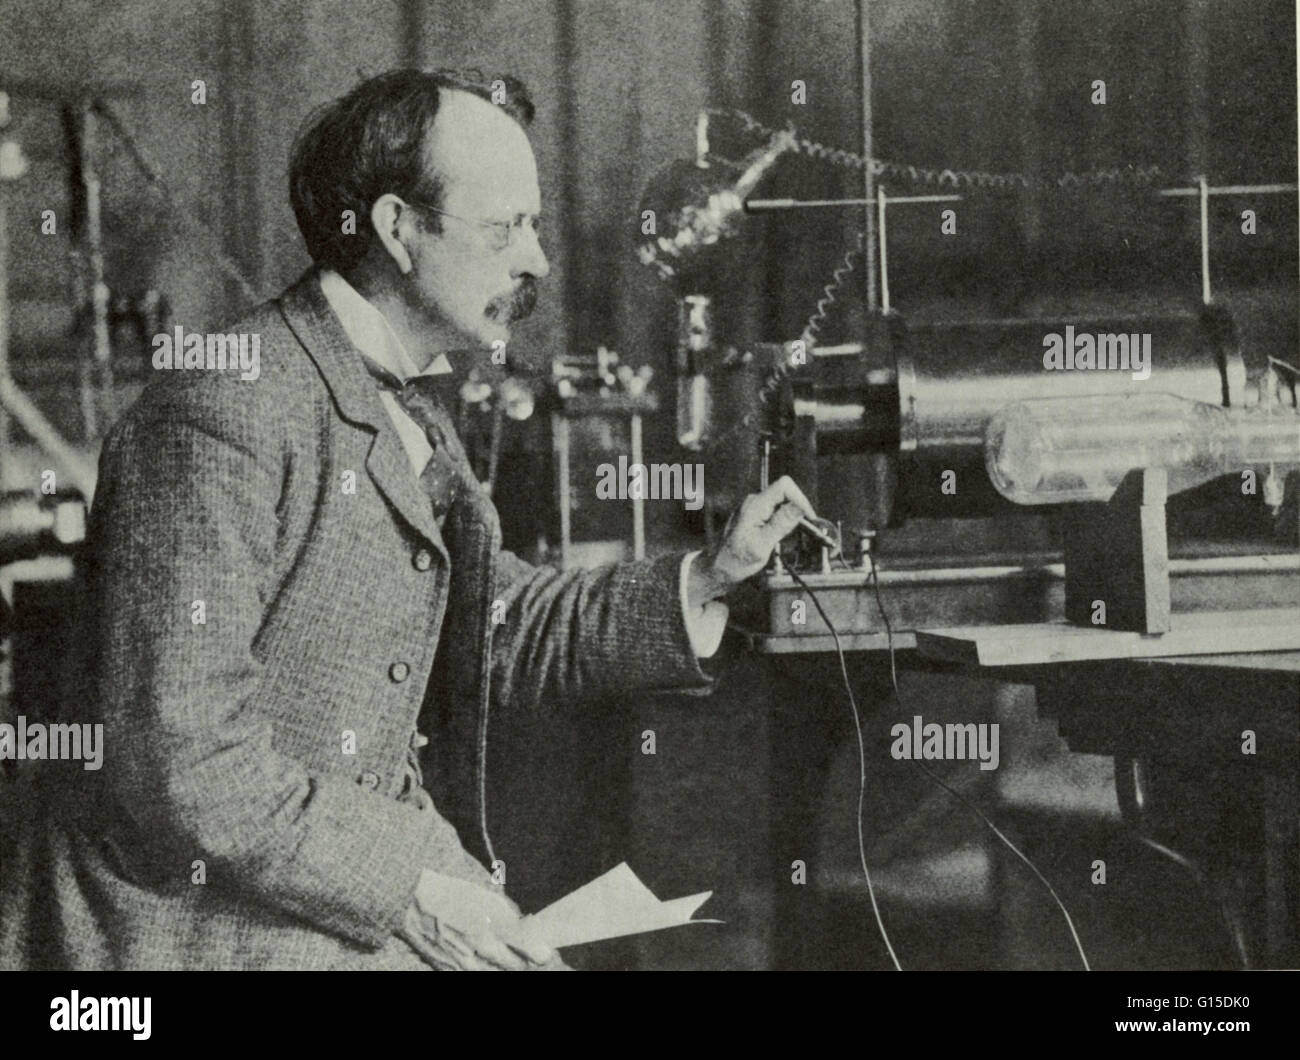 Joseph John Thomson (December 18, 1856 - August 30, 1940) was an English physicist. He is credited with discovering Stock Photo